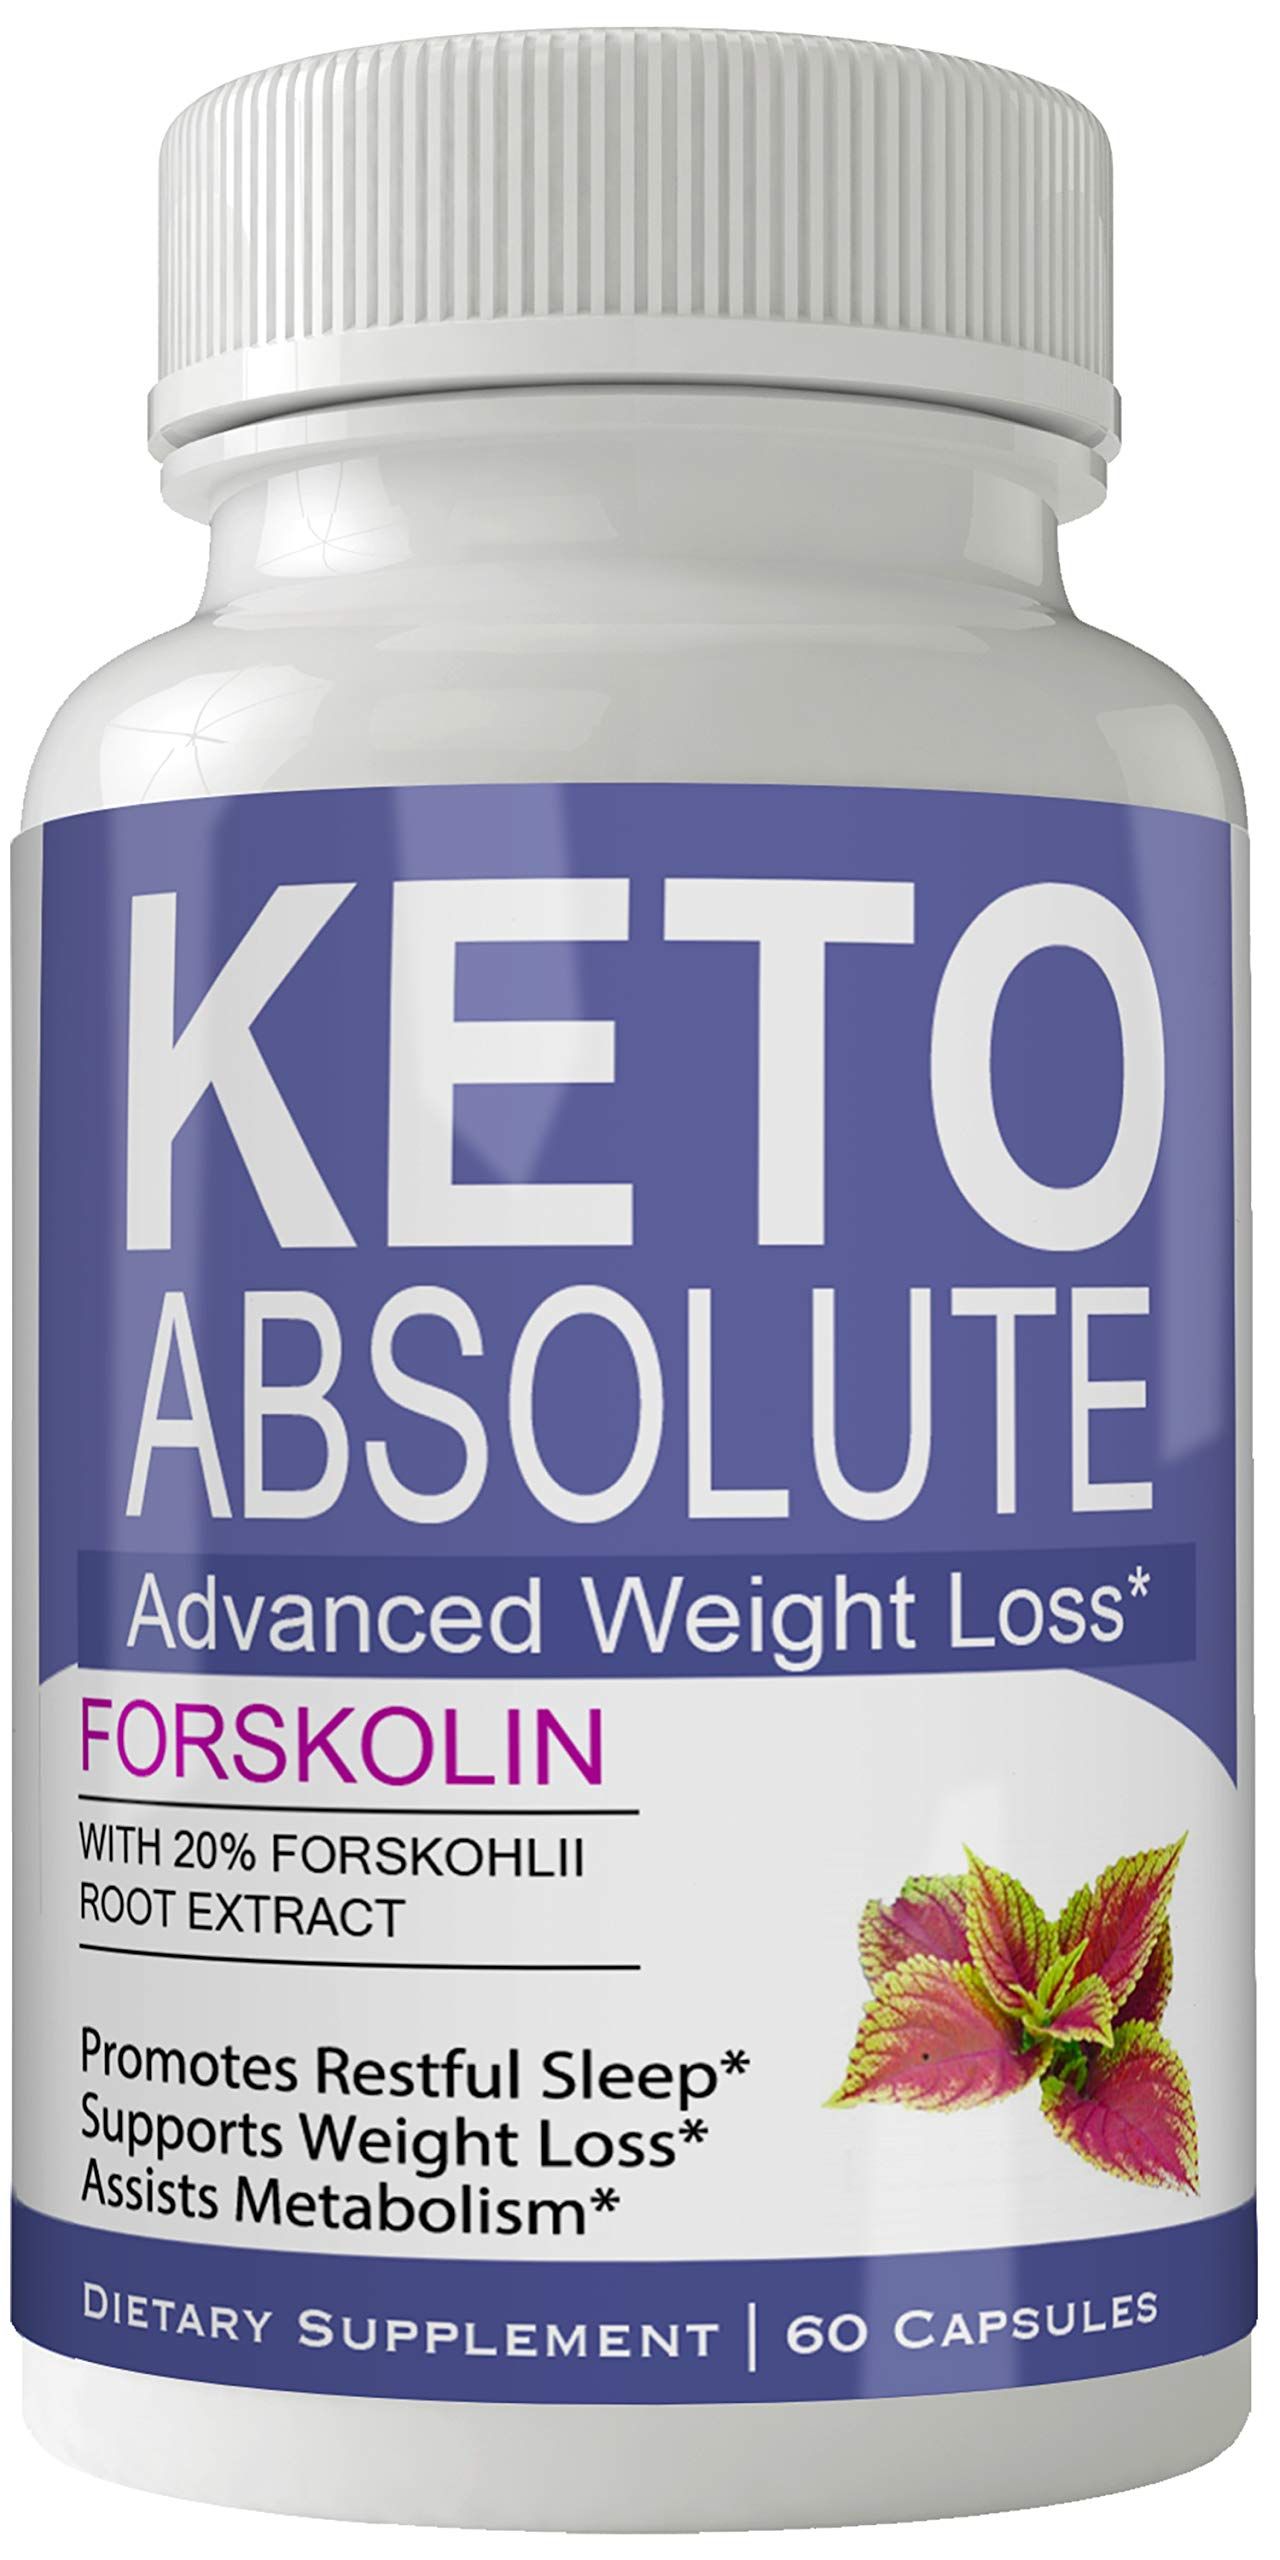 Keto Absolute Supplement Forskolin for Weight Loss Capsules with Natural High Quality Pure Forskolin Extract Diet Pills by nutra4health LLC (Image #1)